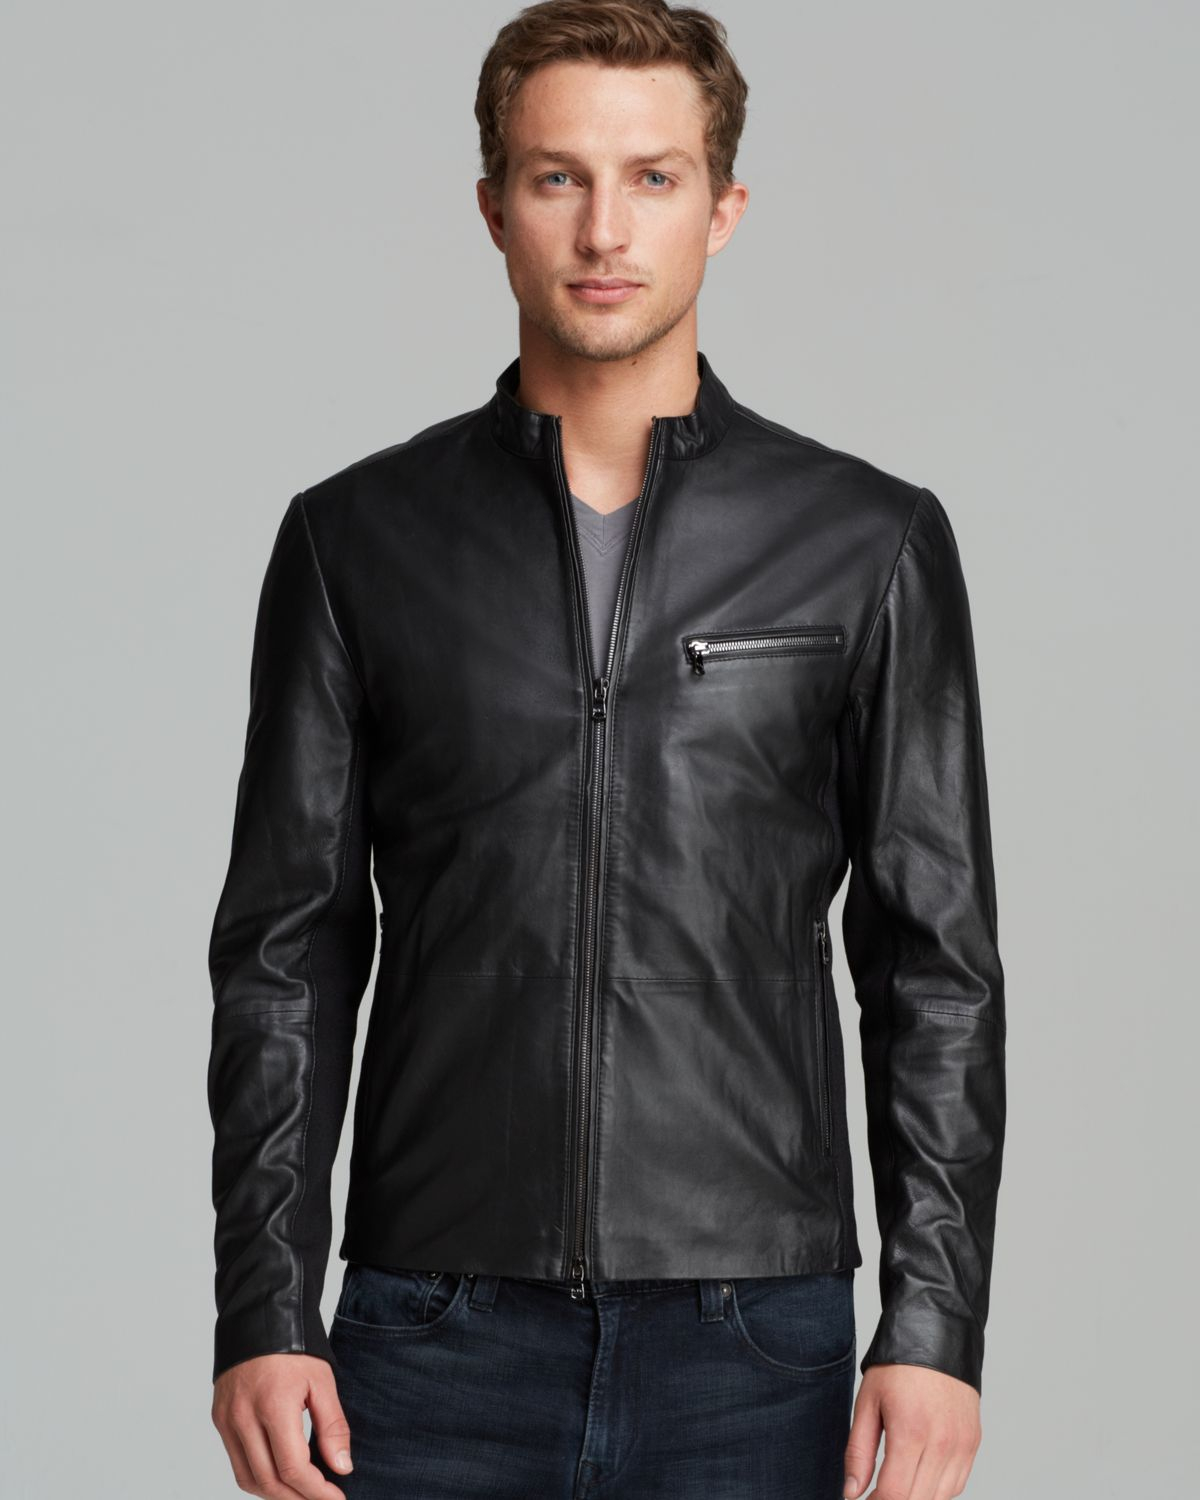 Michael kors leather jacket for sale